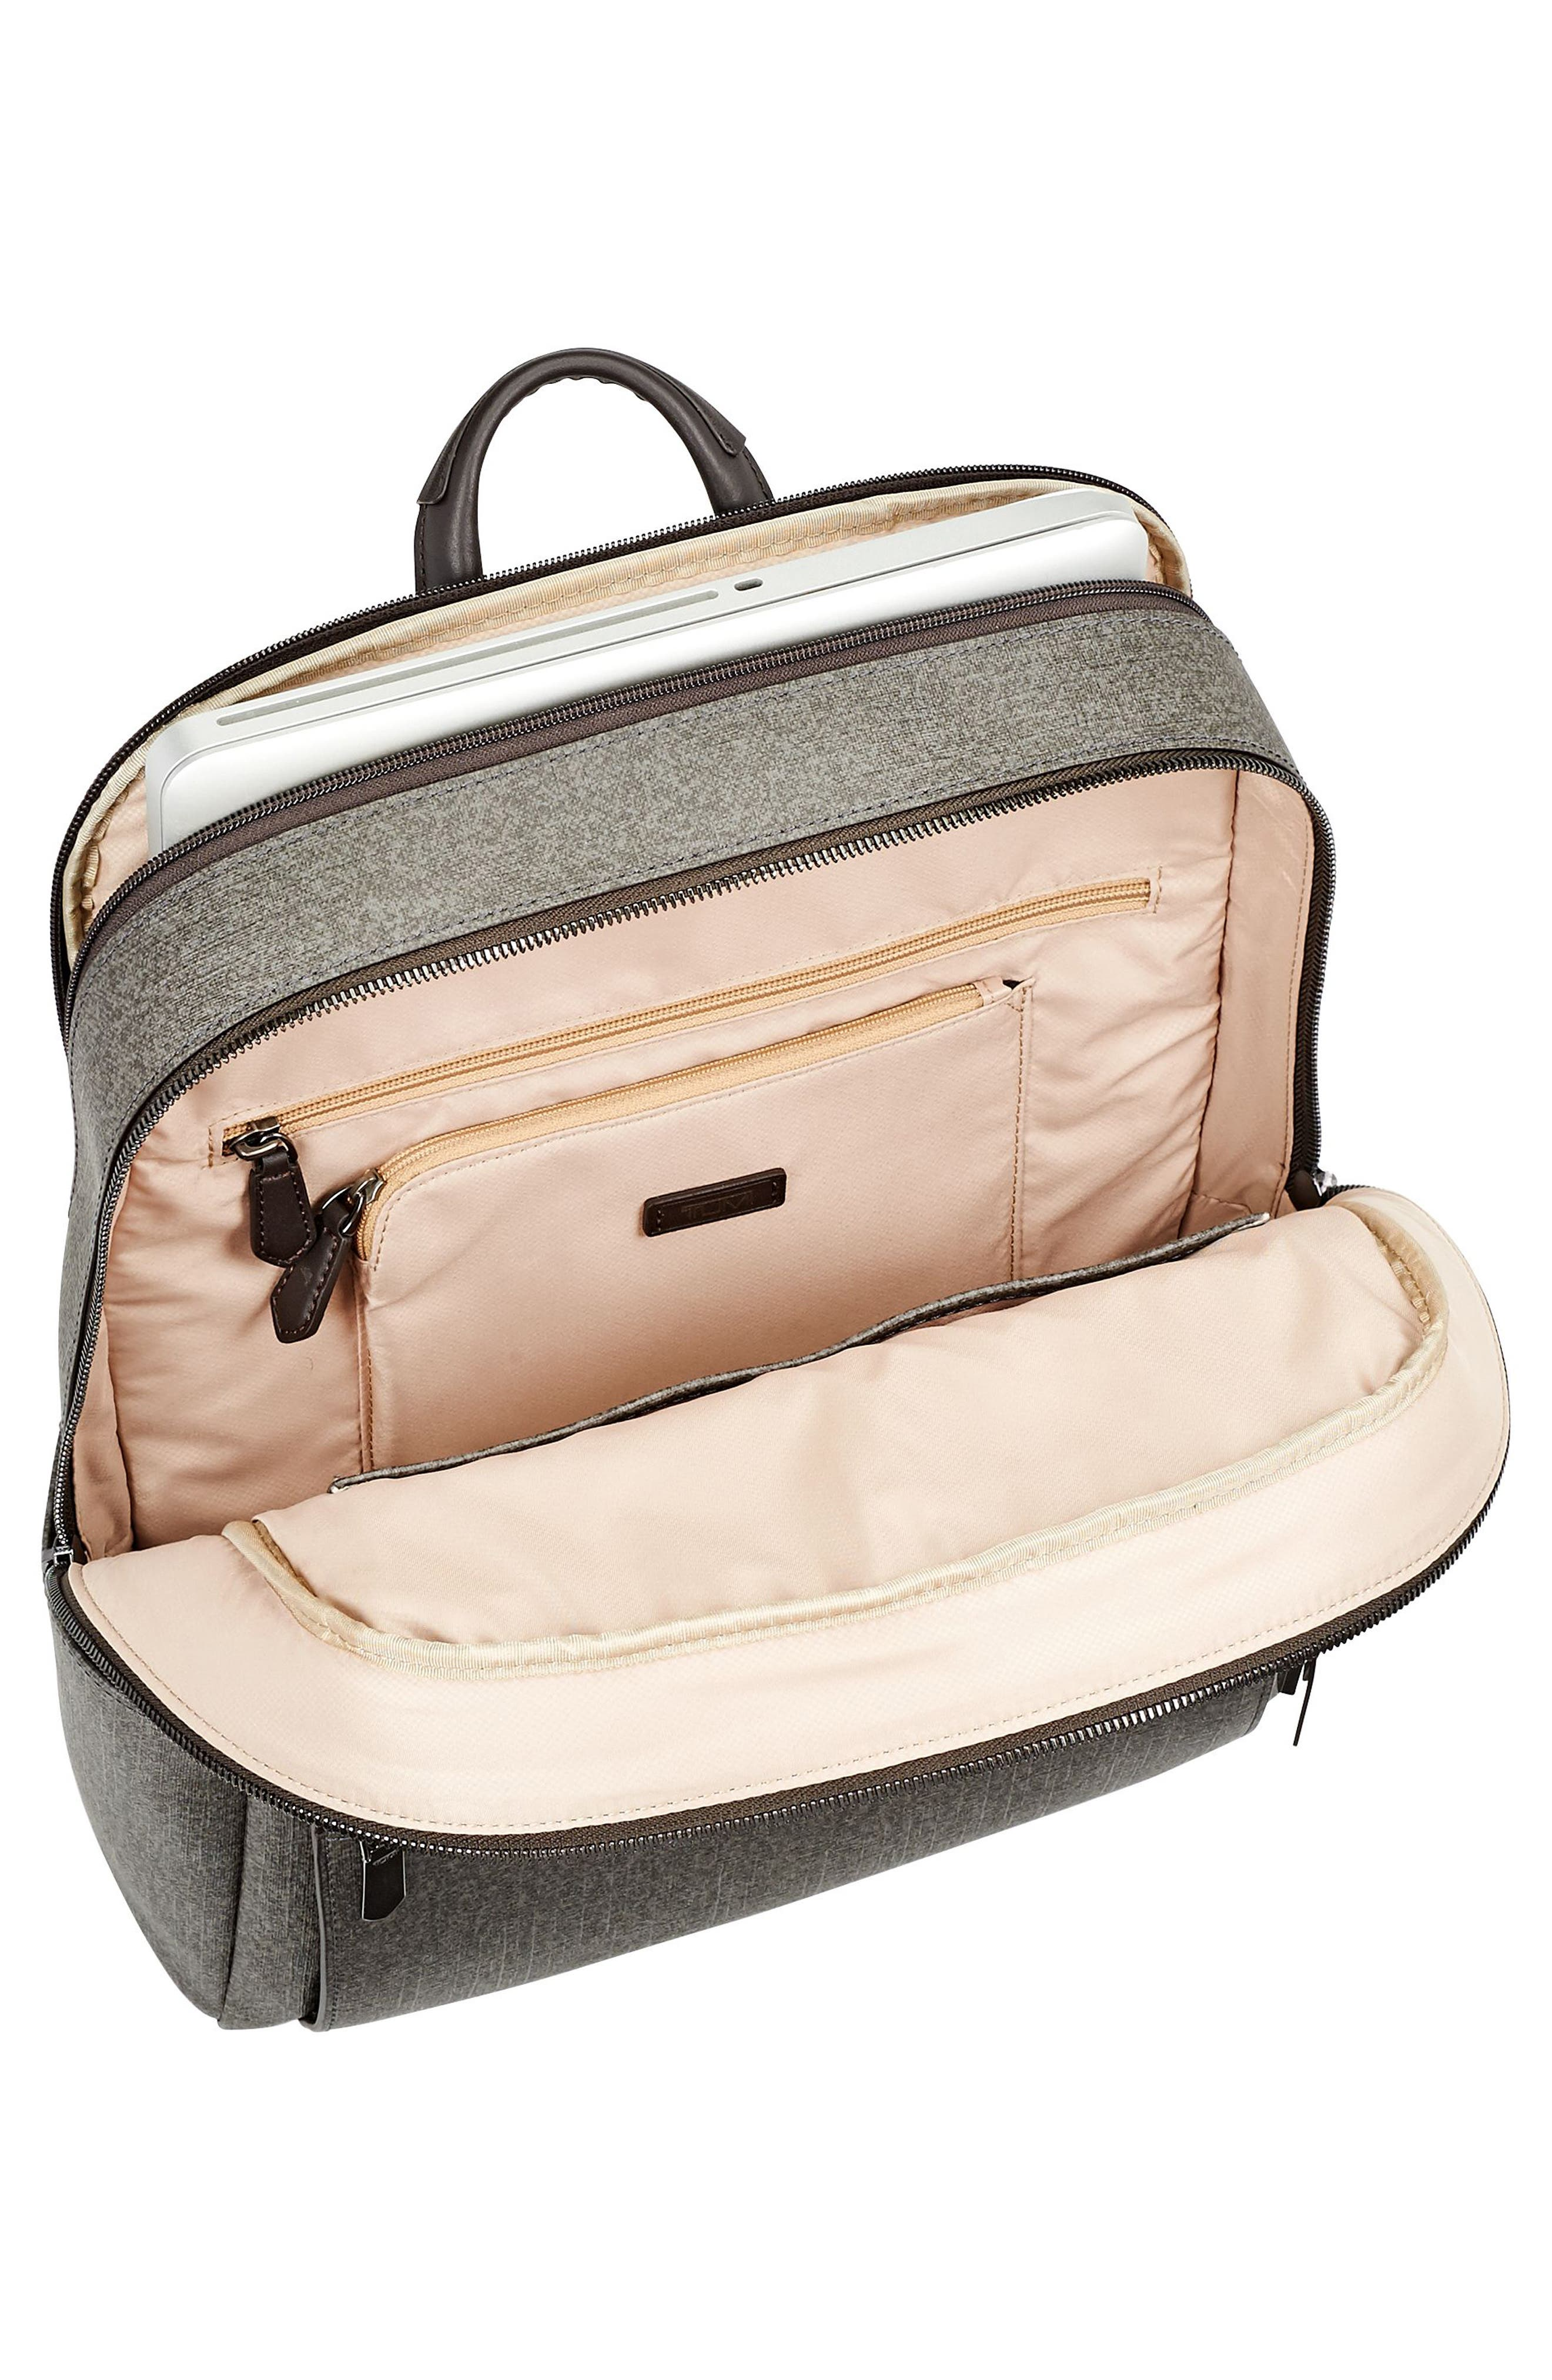 Stanton Becca Coated Canvas Backpack,                             Alternate thumbnail 4, color,                             Earl Grey